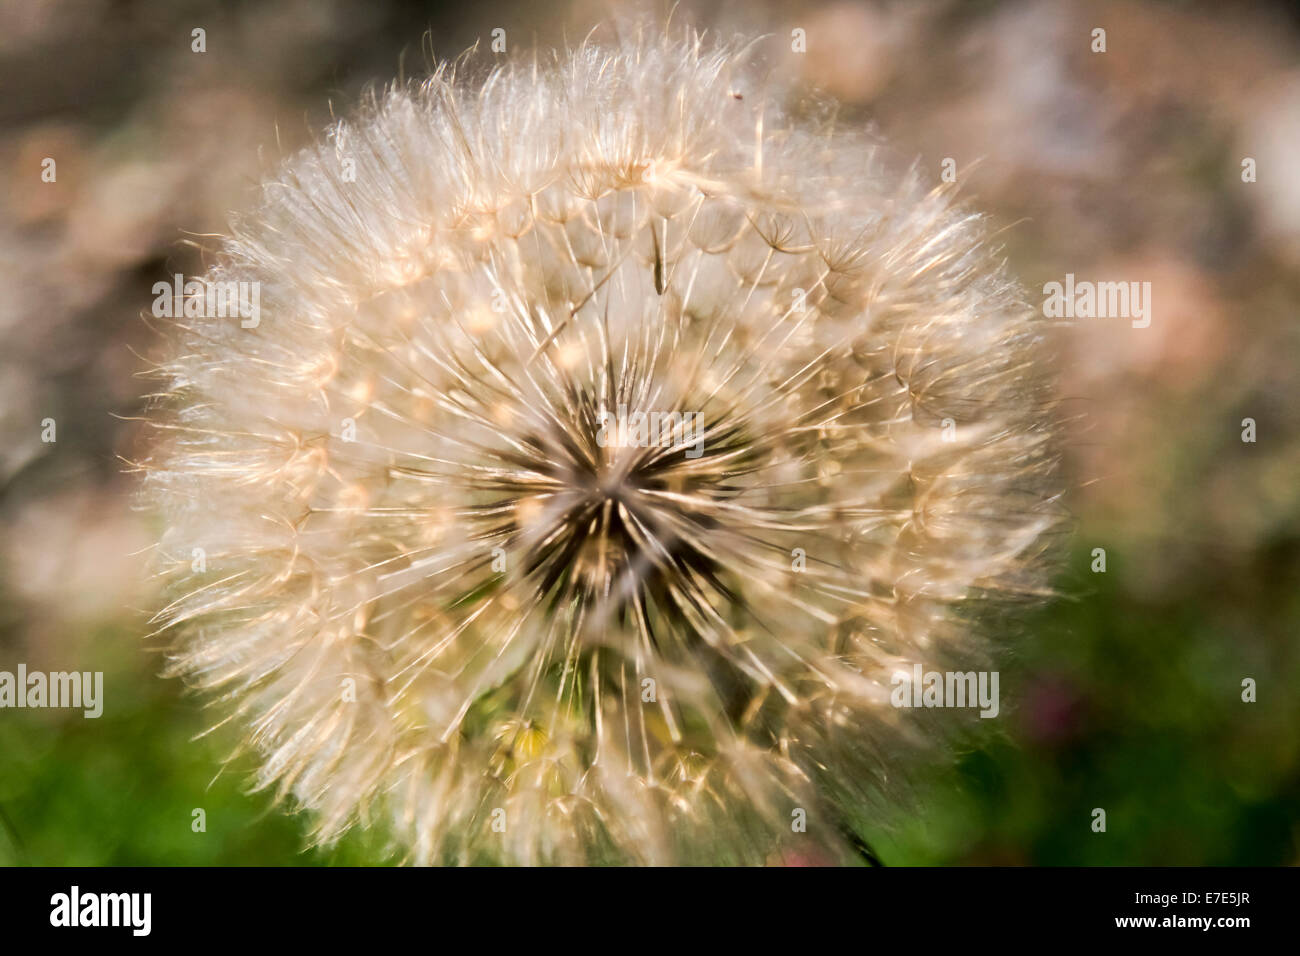 Dandelion blowball. Photographed in Armenia - Stock Image